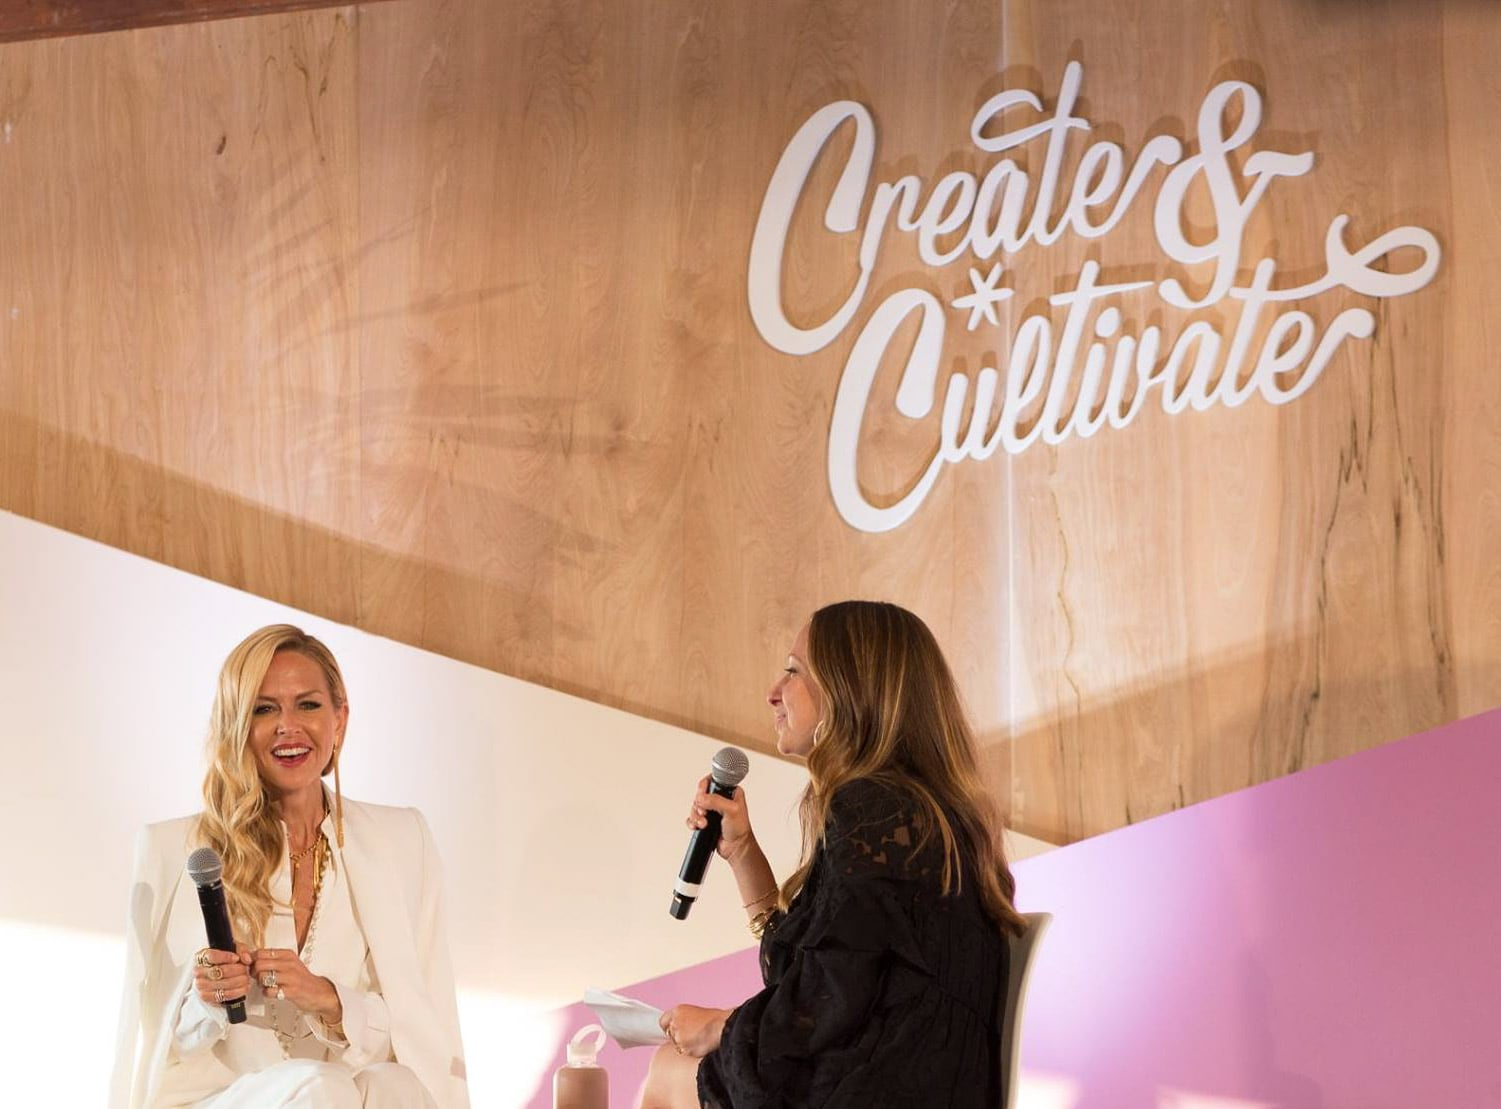 Rachel Zoe Interview | Create + Cultivate Los Angeles 2016 Conference Recap + Review | Beauty and Style Blogger Ashley Brooke Nicholas